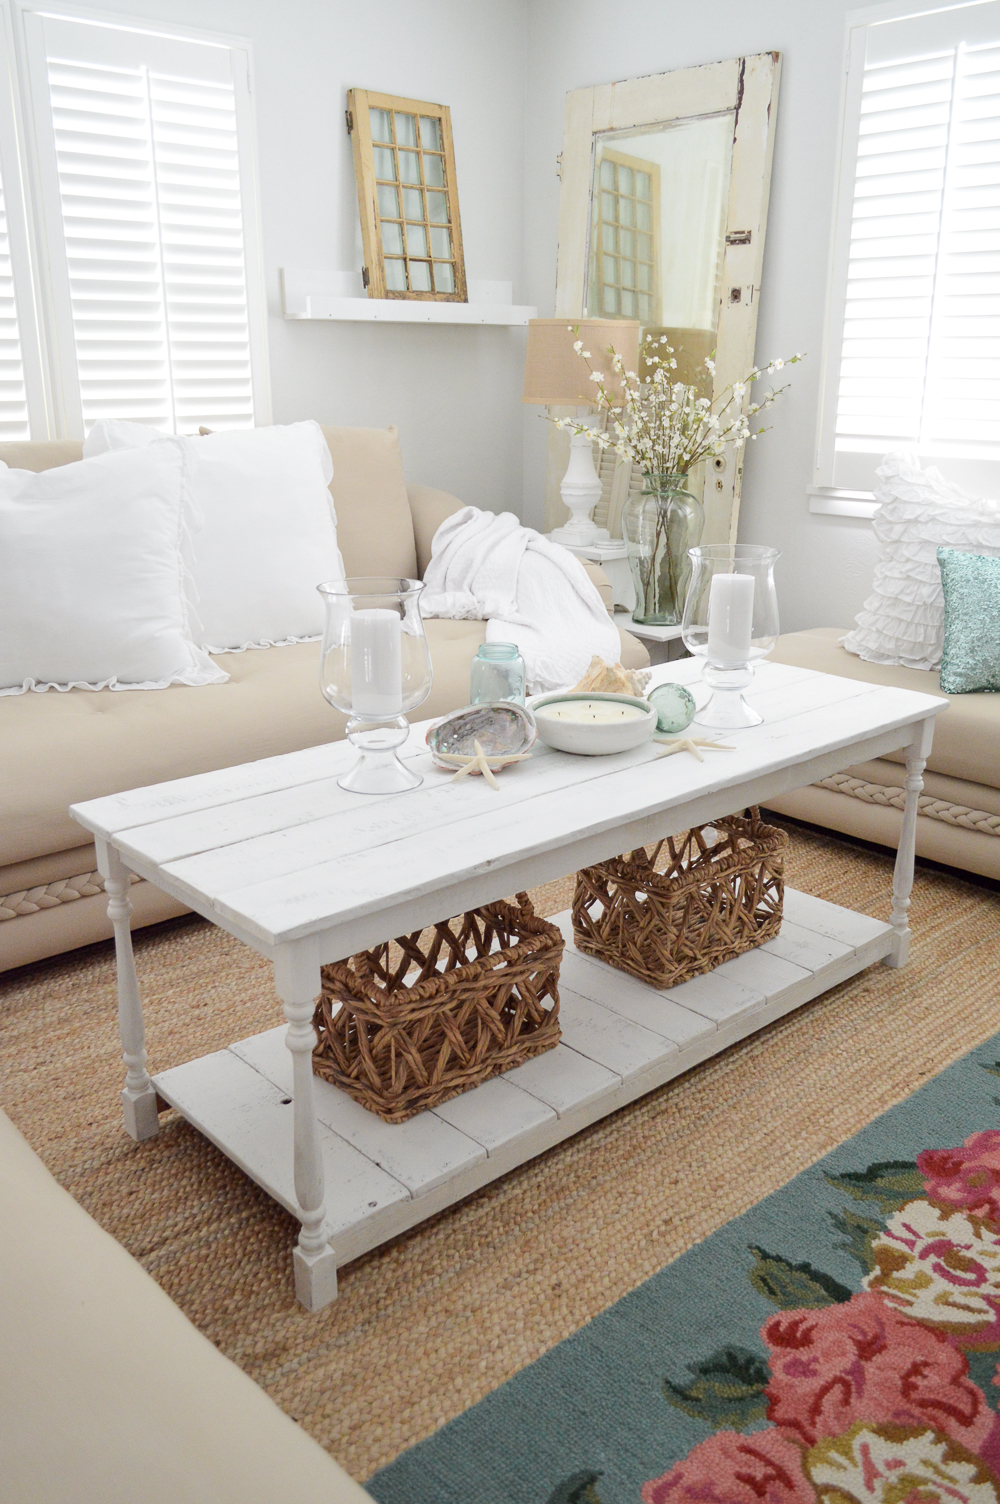 DIY white painted wood coffee table. Coastal cottage style home decorating | www.foxhollowcottage.com Simple Summer Decorating Ideas and Home Tour